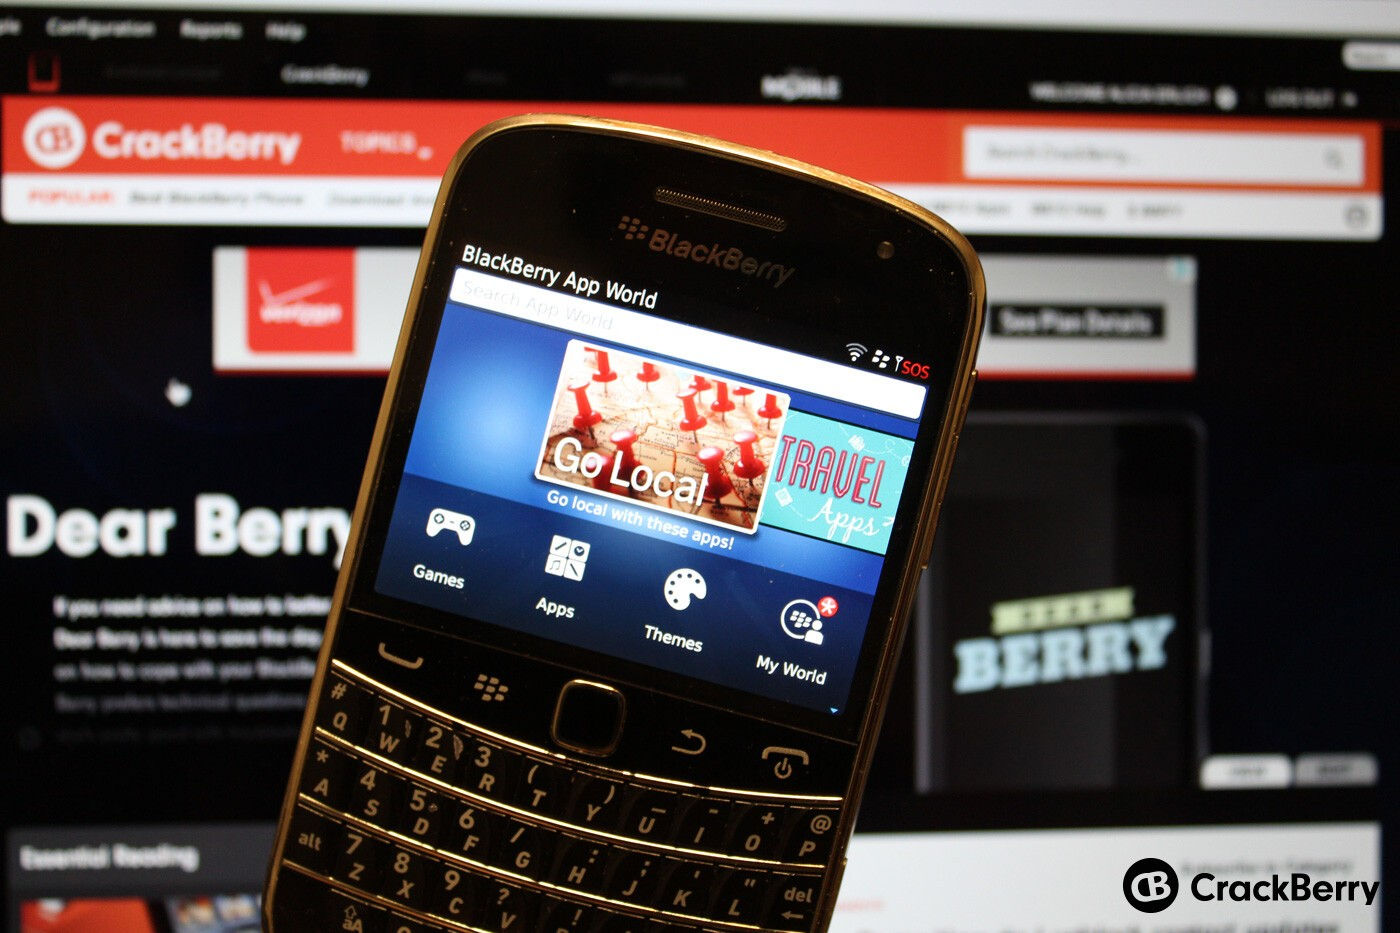 Dear Berry: How can I use a BlackBerry without BIS